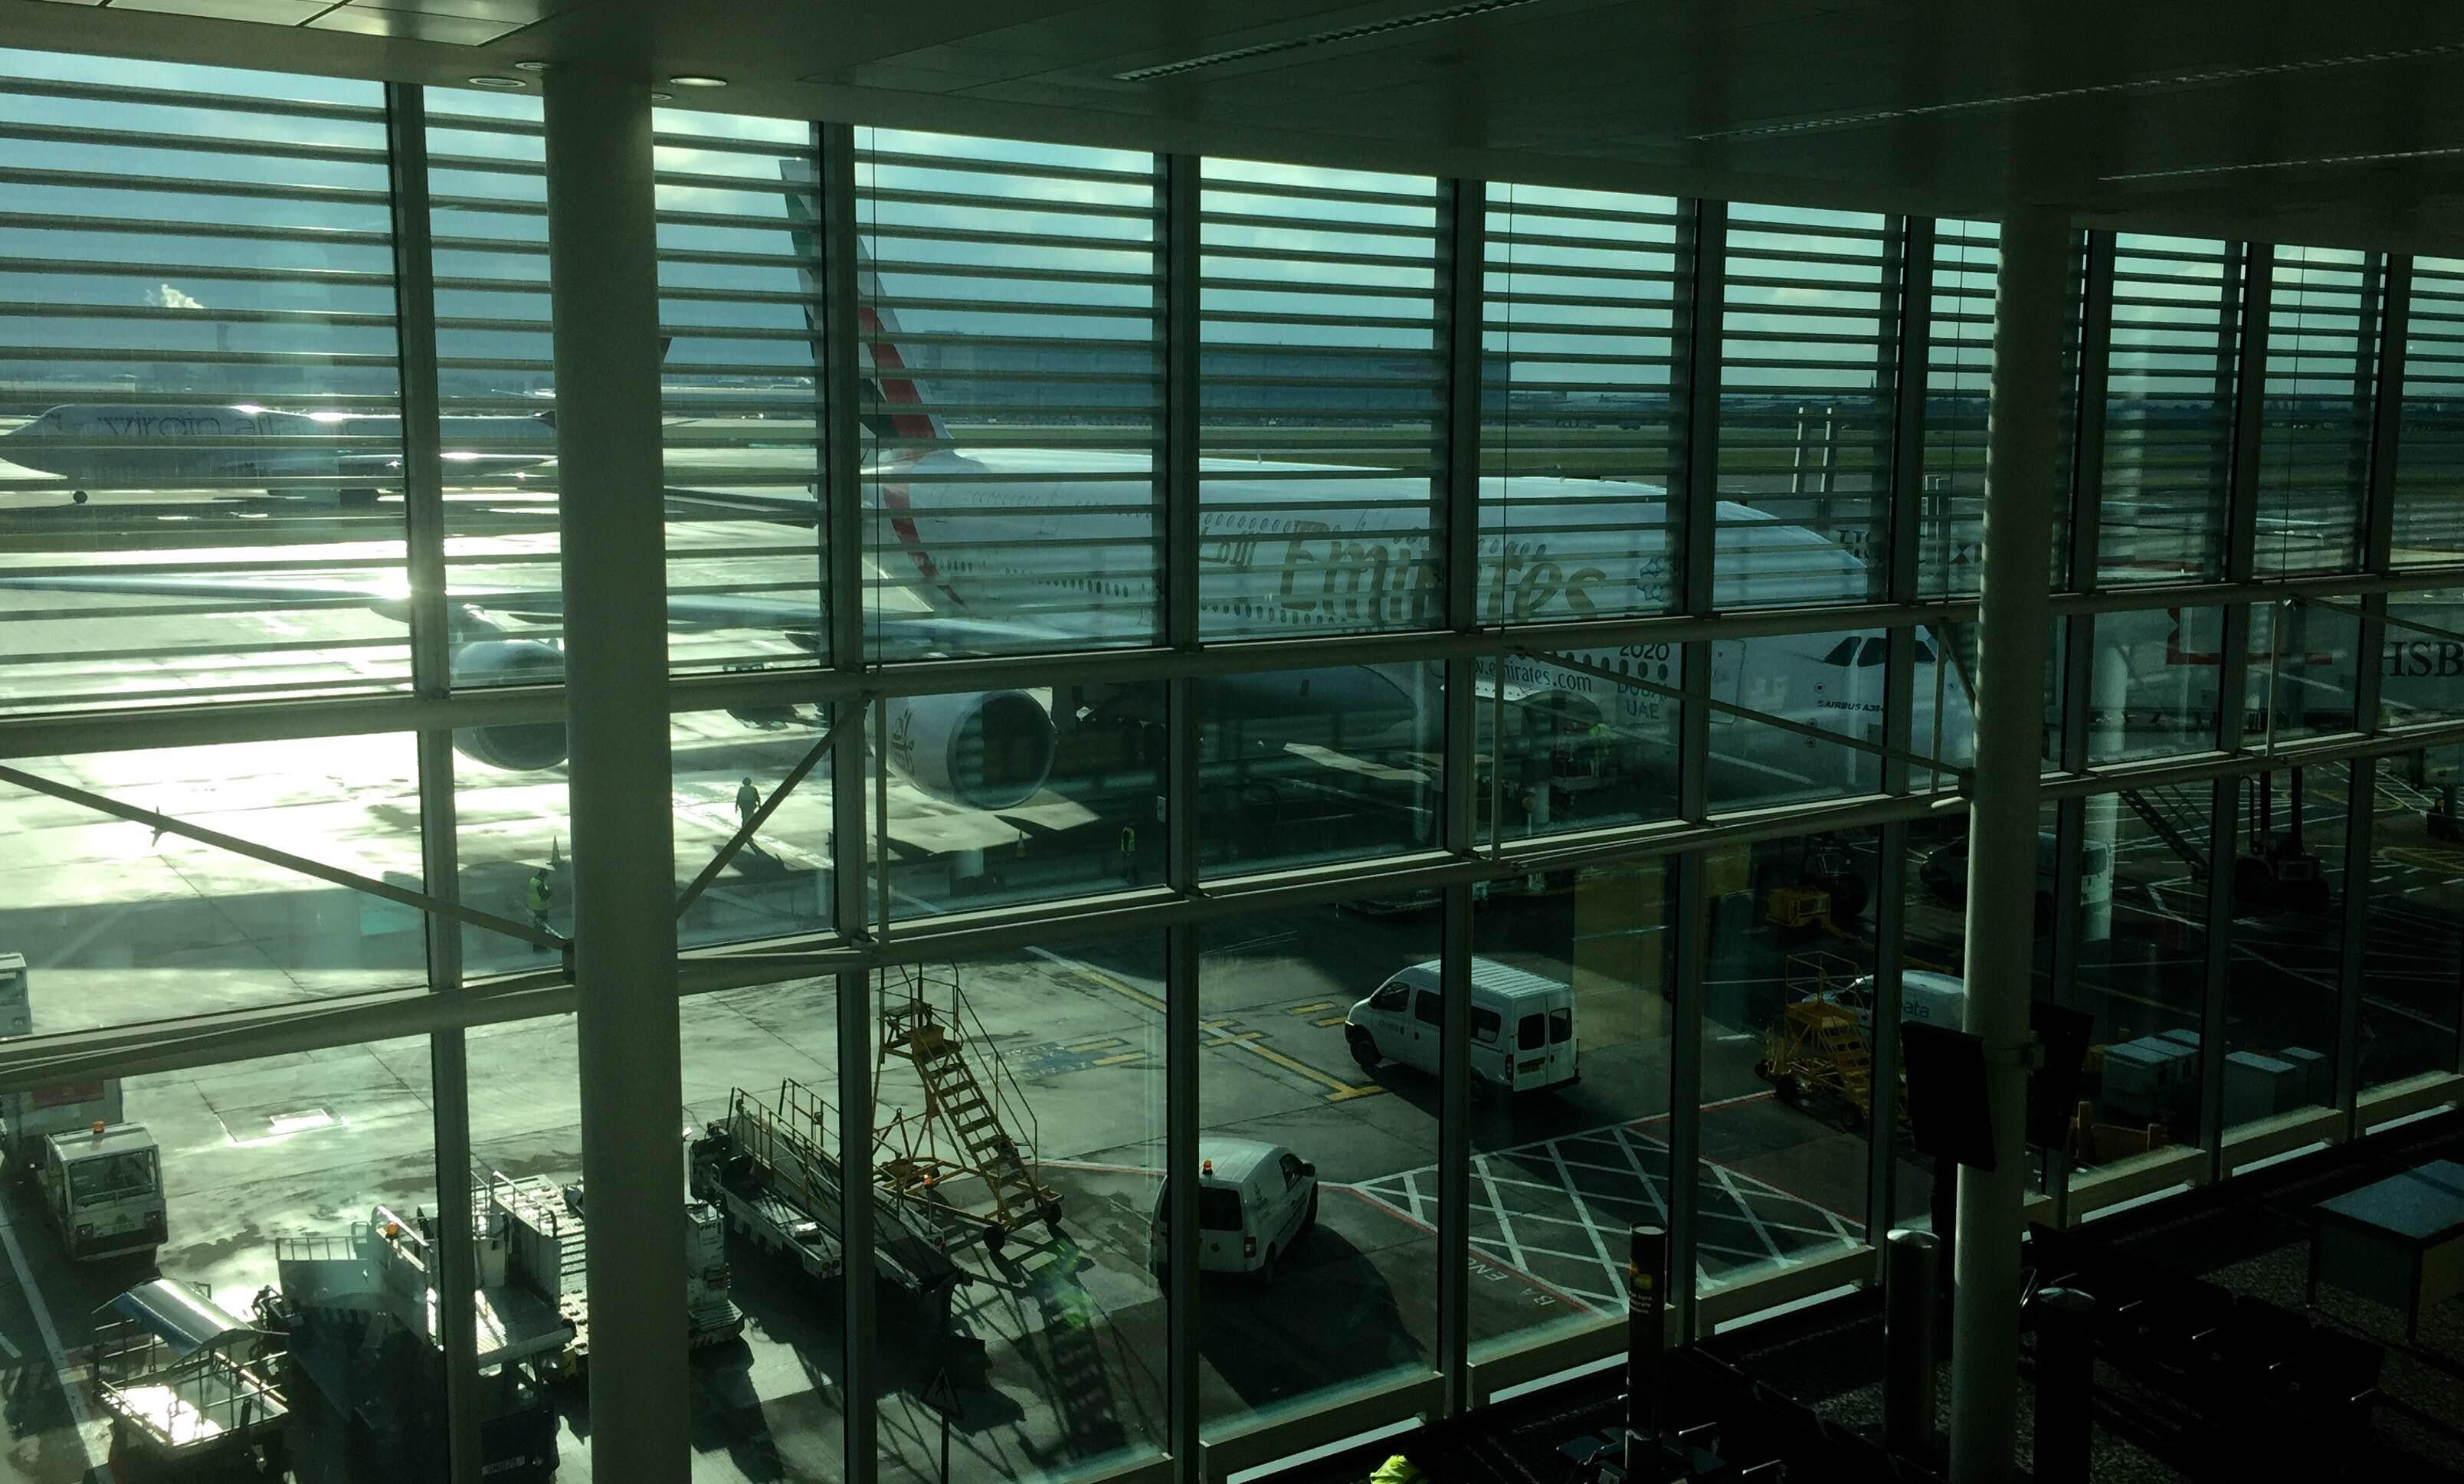 Ventana en Aeropuerto de Londres - Heathrow